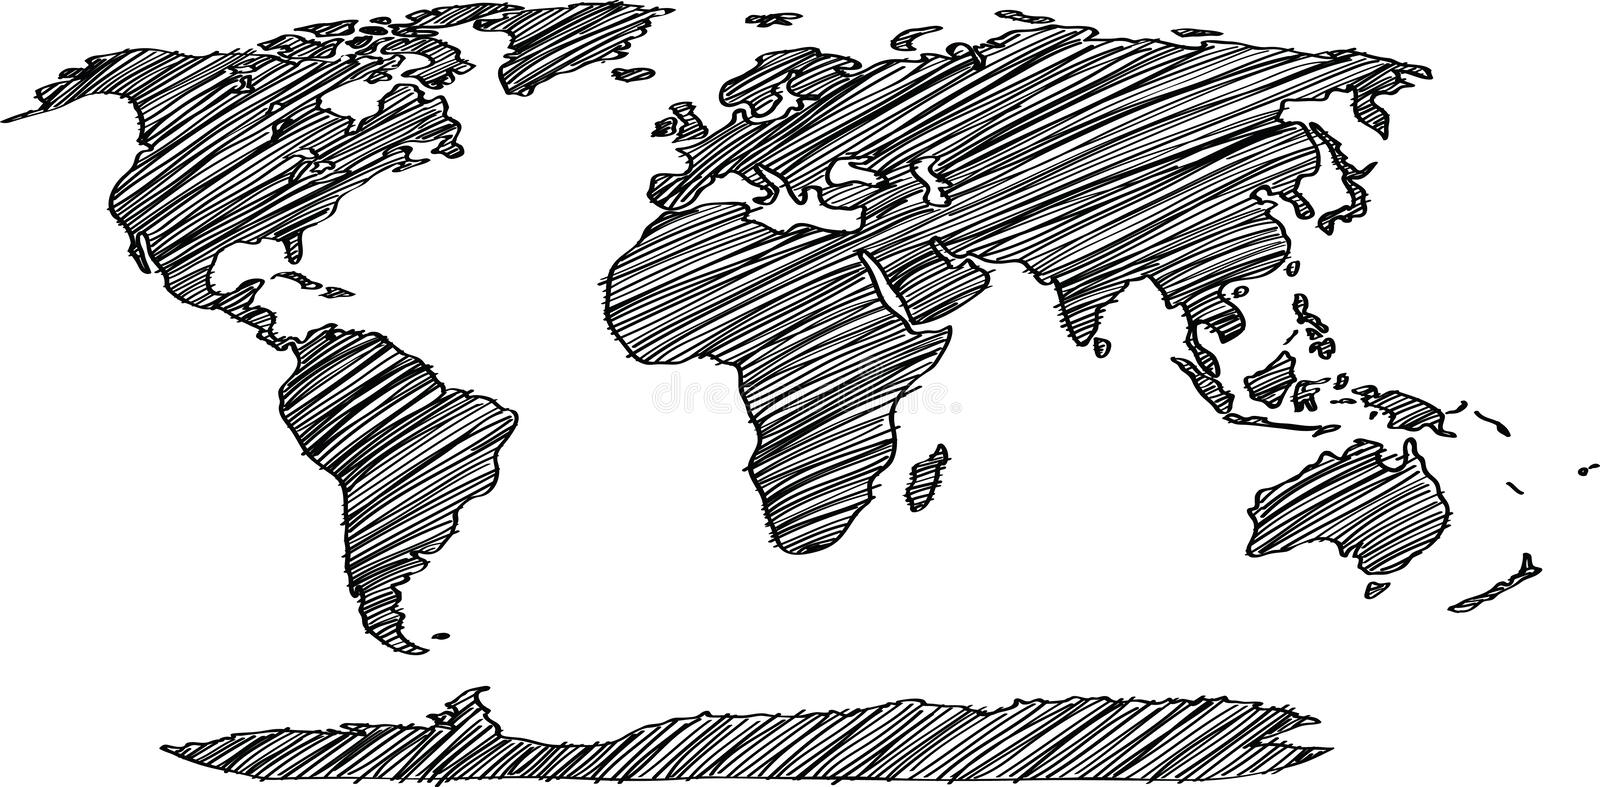 World map globe vector line sketch up illustrator stock vector download world map globe vector line sketch up illustrator stock vector illustration of globe gumiabroncs Image collections